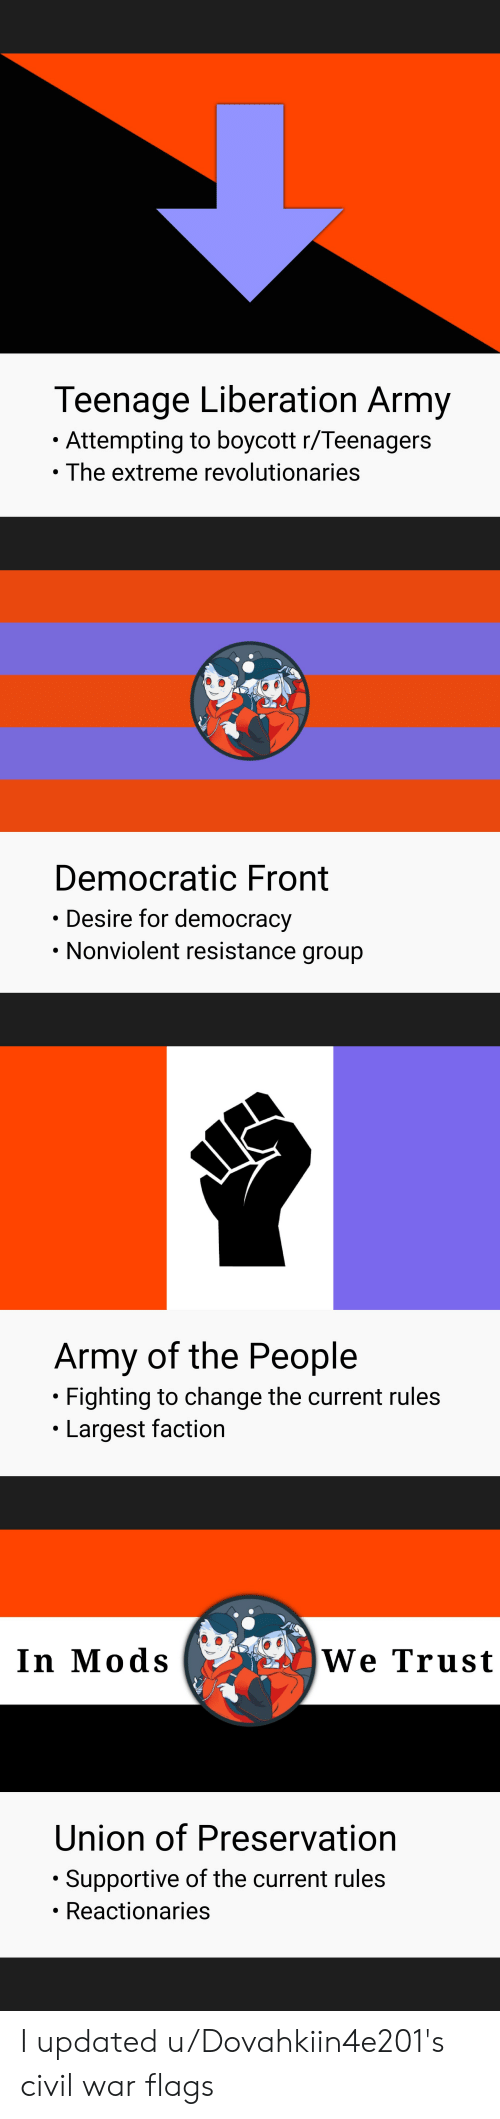 Army, Civil War, and Change: Teenage Liberation Army  Attempting to boycott r/Teenagers  The extreme revolutionaries  Democratic Front  Desire for democracy  Nonviolent resistance group  Army of the People  Fighting to change the current rules  Largest faction  We Trust  In Mods  Union of Preservation  Supportive of the current rules  Reactionaries I updated u/Dovahkiin4e201's civil war flags